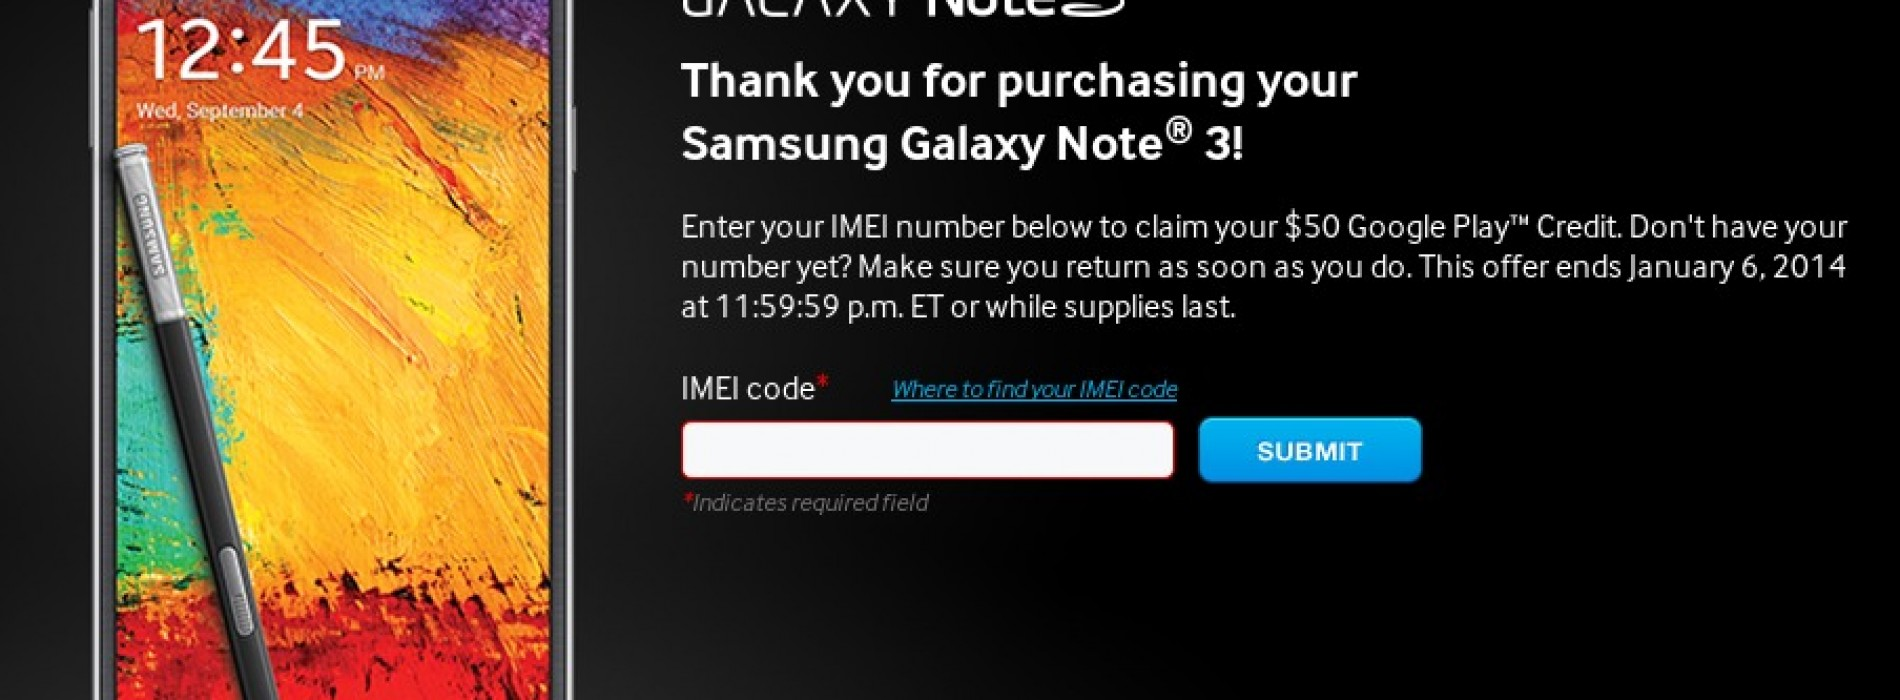 Samsung offering U.S. residents $50 Google Play credit with Galaxy Note 3 purchase